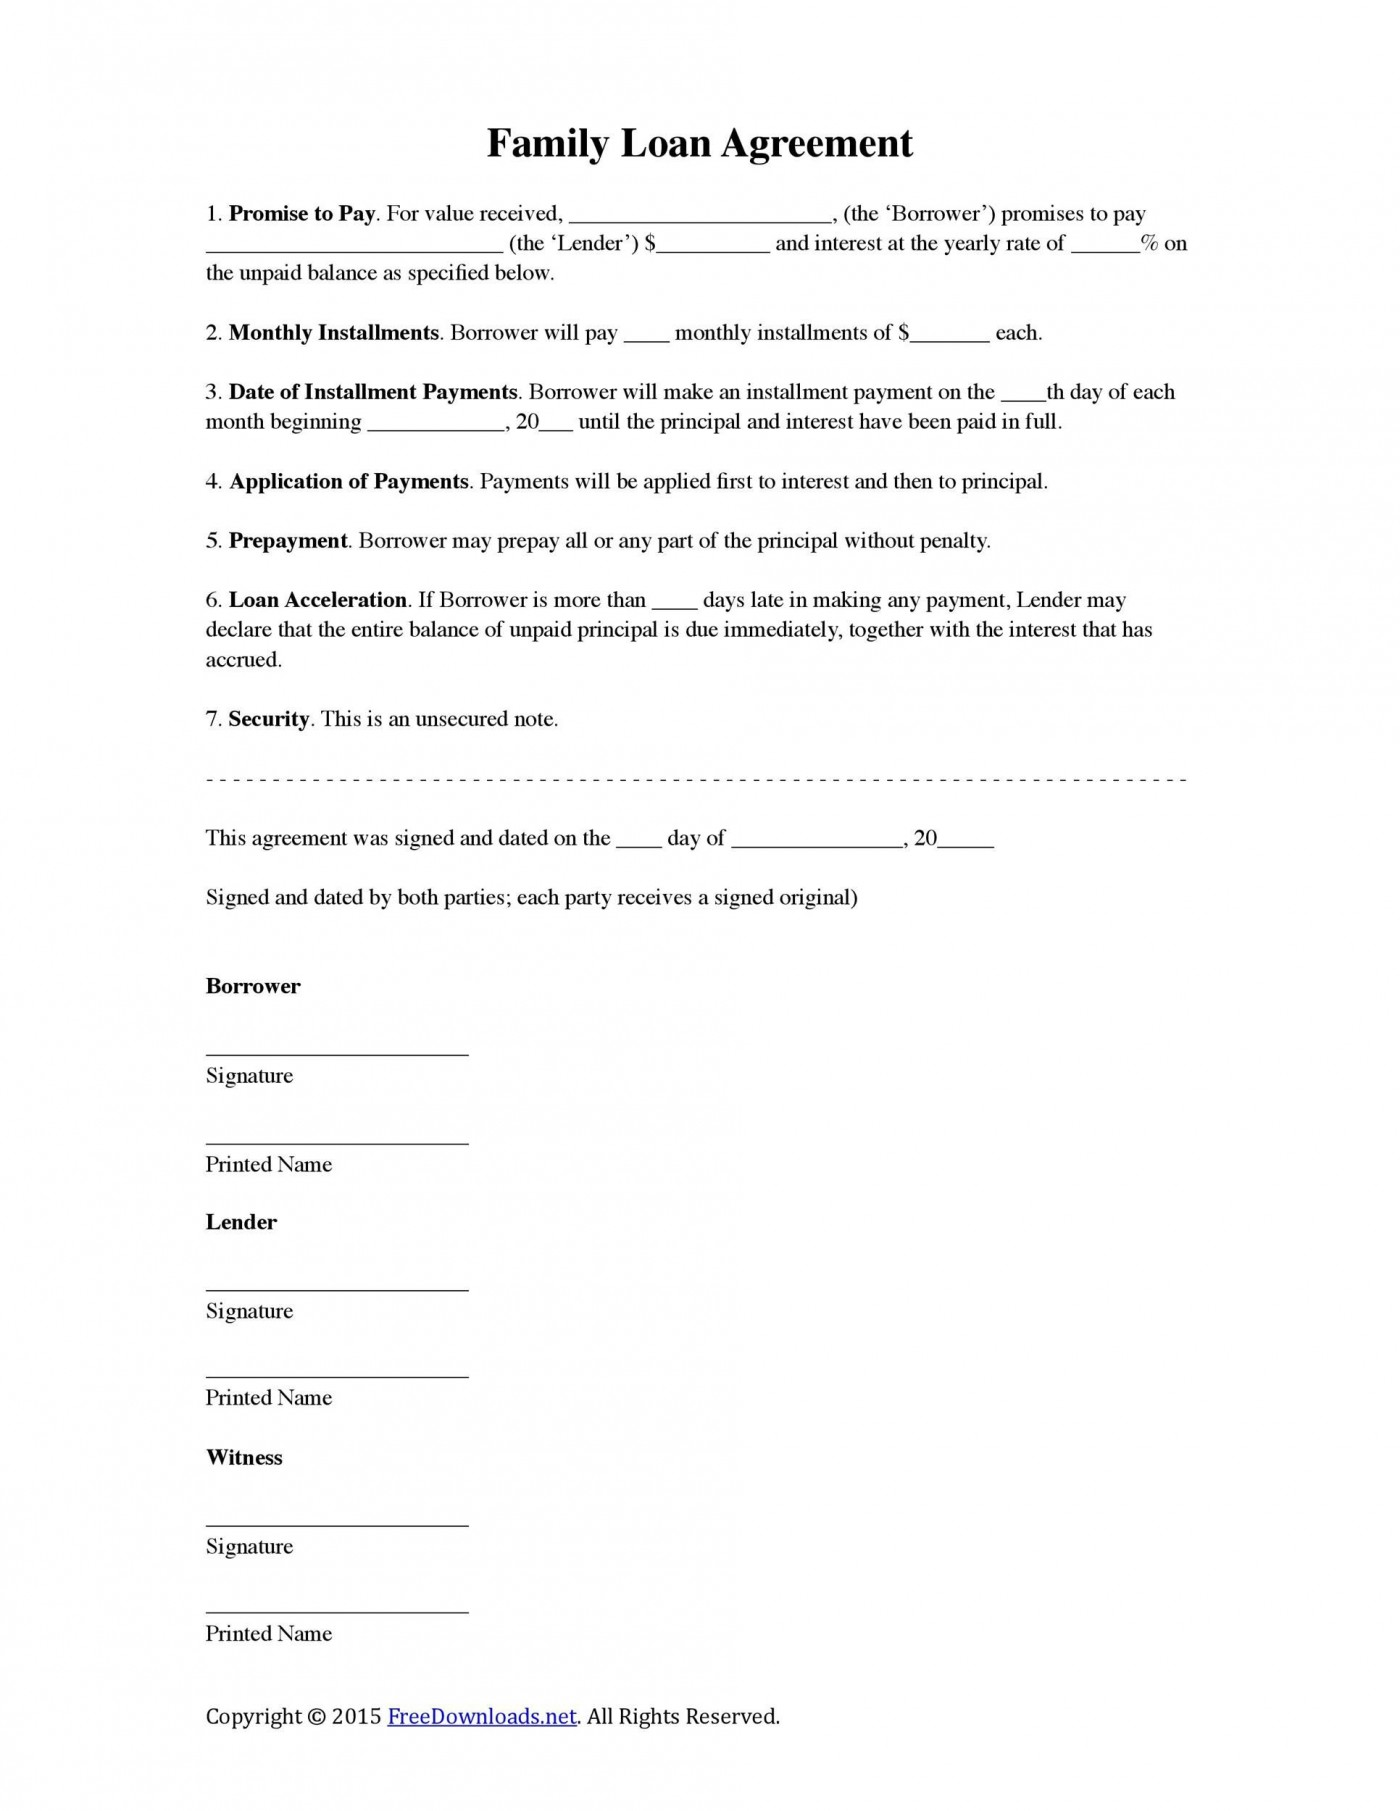 009 Stupendou Family Loan Agreement Template Uk Free High Definition 1400